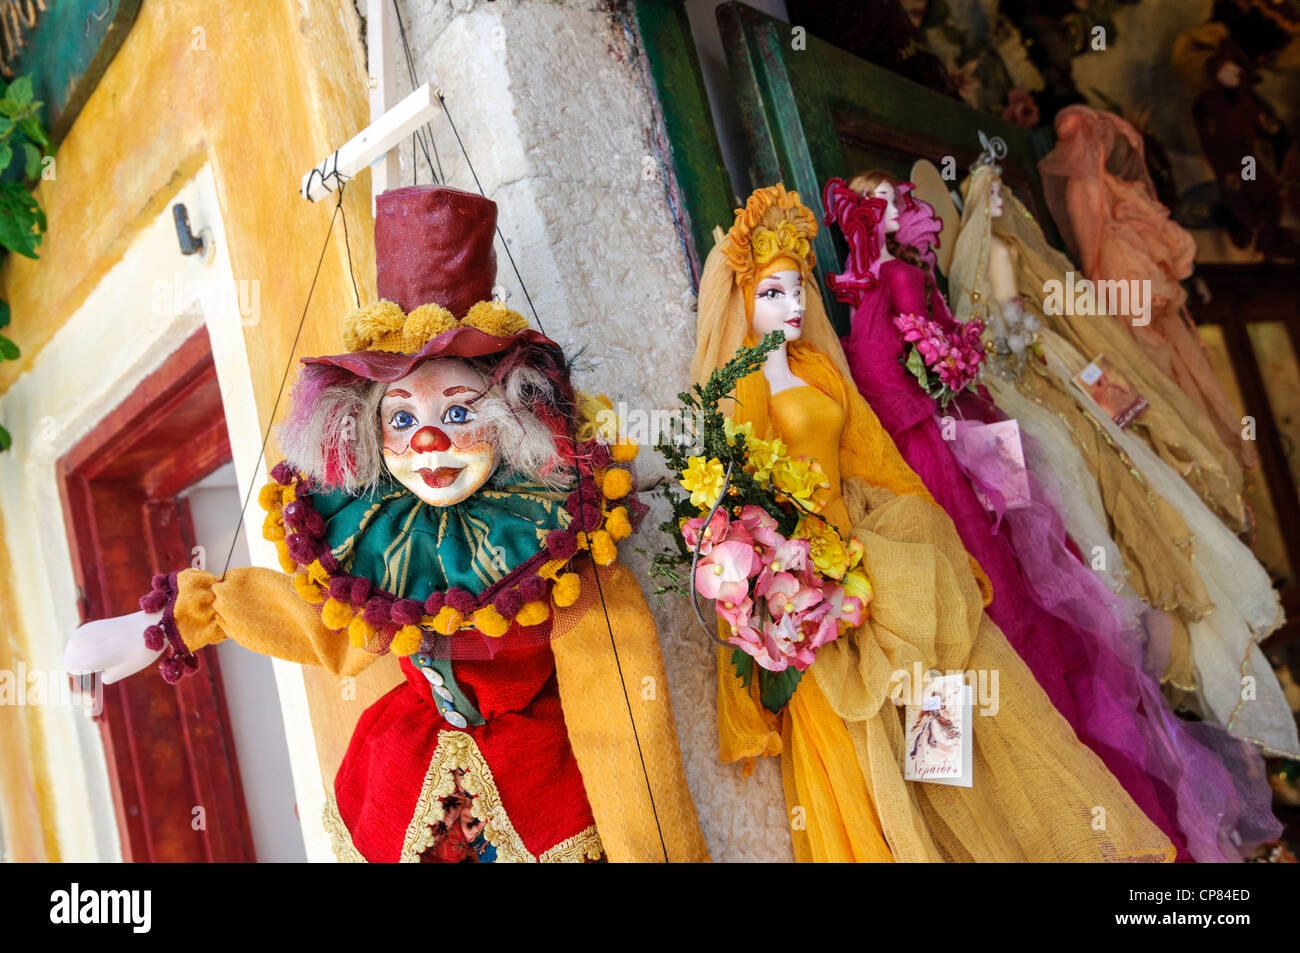 Colorful puppets on display outside a shop in Greece - Stock Image